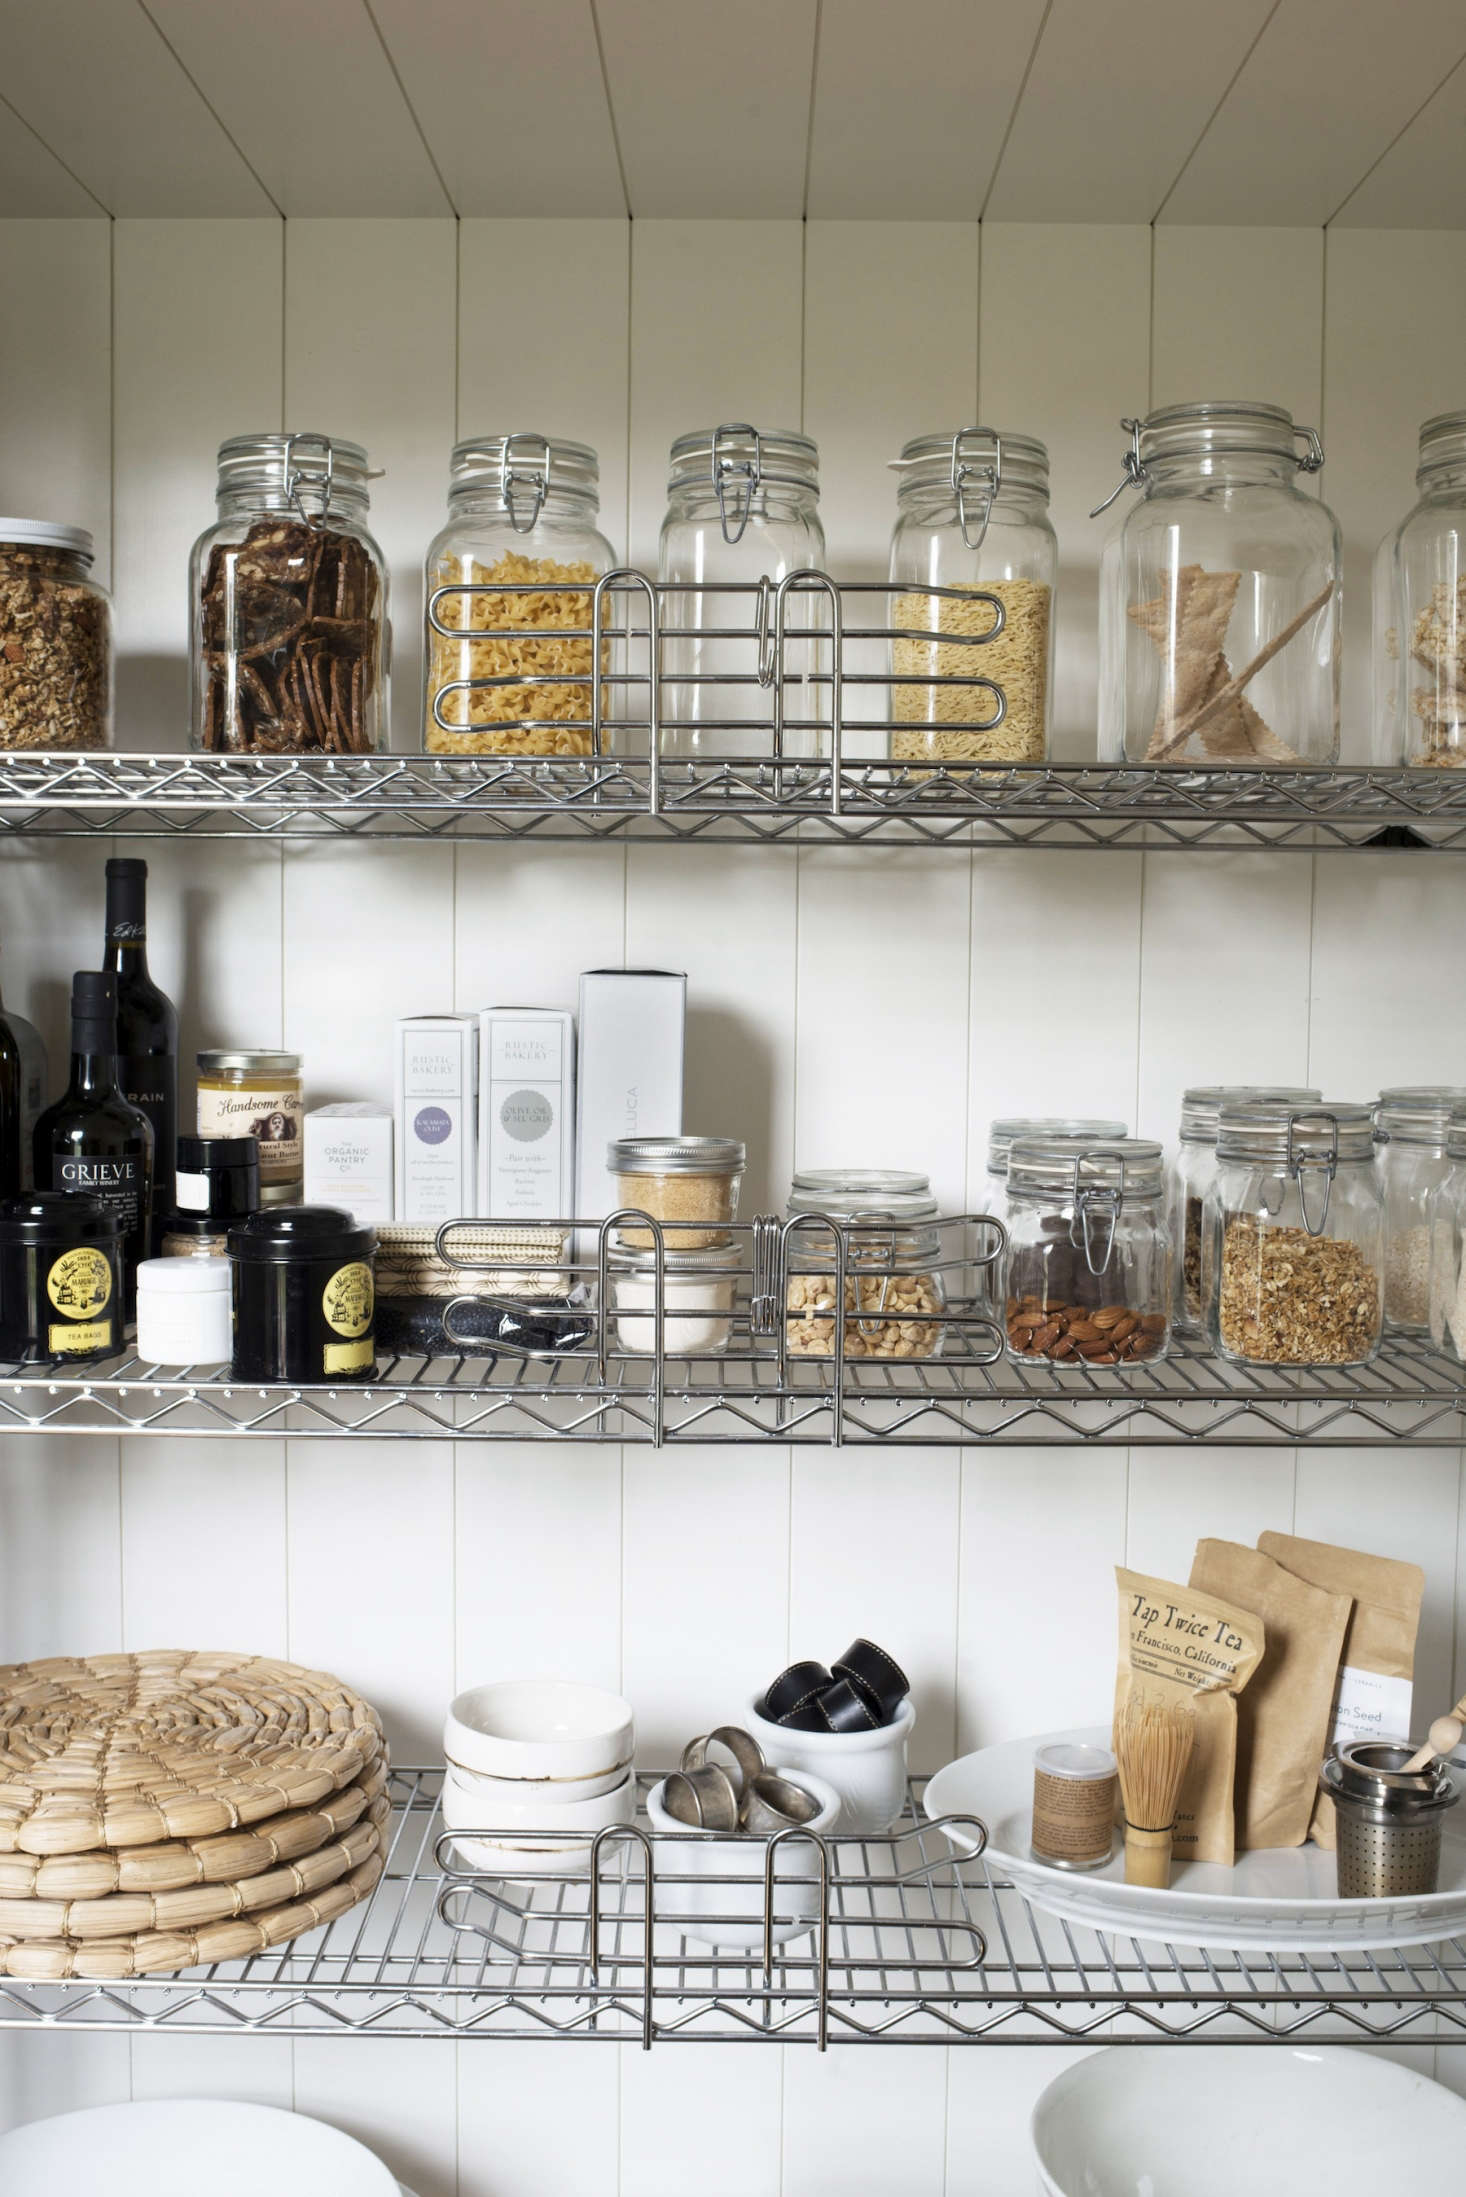 A Peek Inside the Pantry: 11 Kitchen Storage Favorites - Remodelista